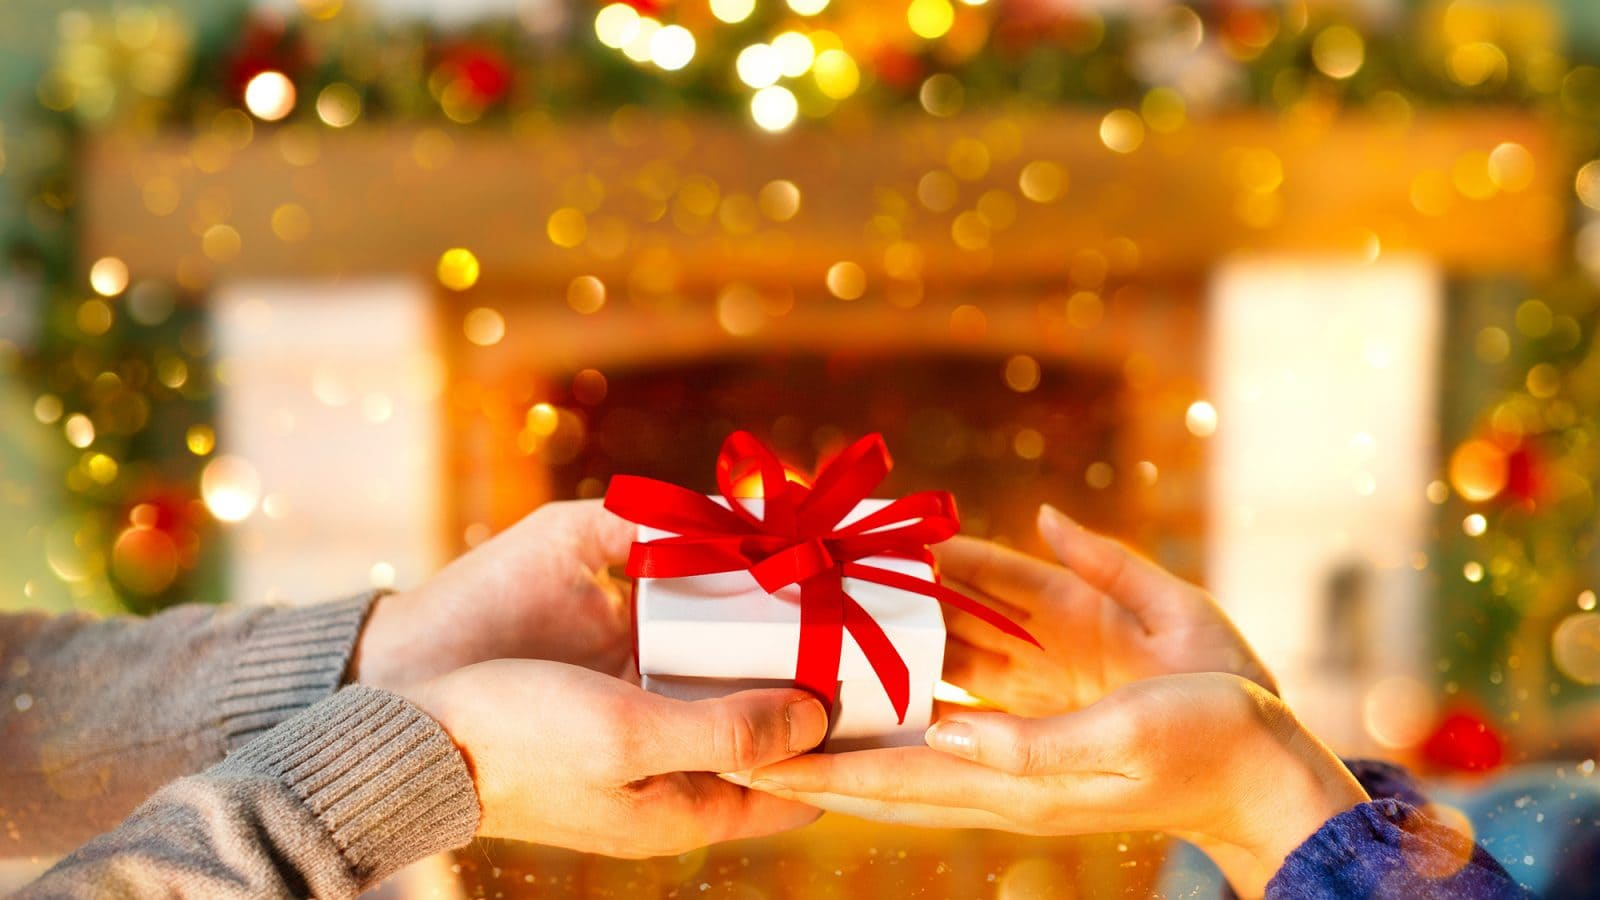 Christmas Gift Ideas and Presents to Give to Your Family and Friends